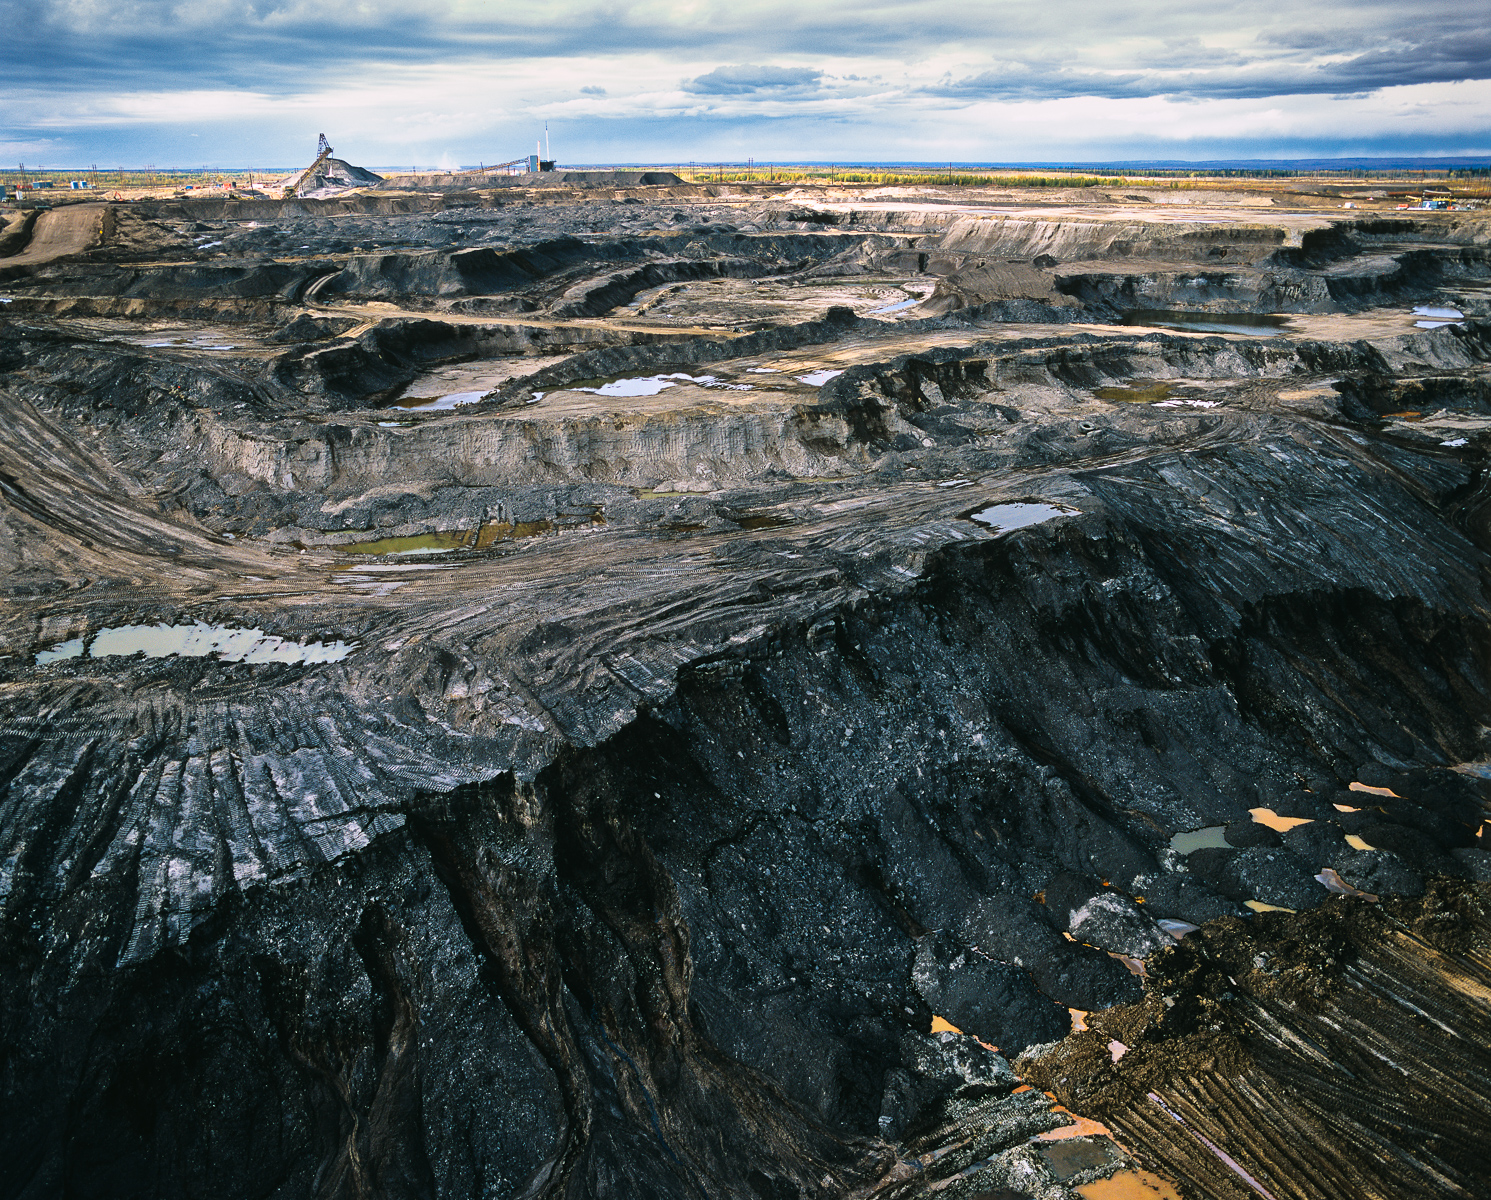 """Tar Sands pit mining is done in benches or steps. These benches are each approximately 12-15 meters high. Giant shovels dig the tar sand and place it into heavy hauler trucks that range in size from 240 tons to the largest trucks, which have a 400-ton capacity.Fine Art Prints:All prices in U.S. dollars.Prices are for prints only and do not include tax or shipping.16""""x20""""          edition of 25  /  $100020""""x24""""edition of 15  /  $150030""""x40""""edition of 10  /  $350040""""x50                    edition of 6   /   $6000"""